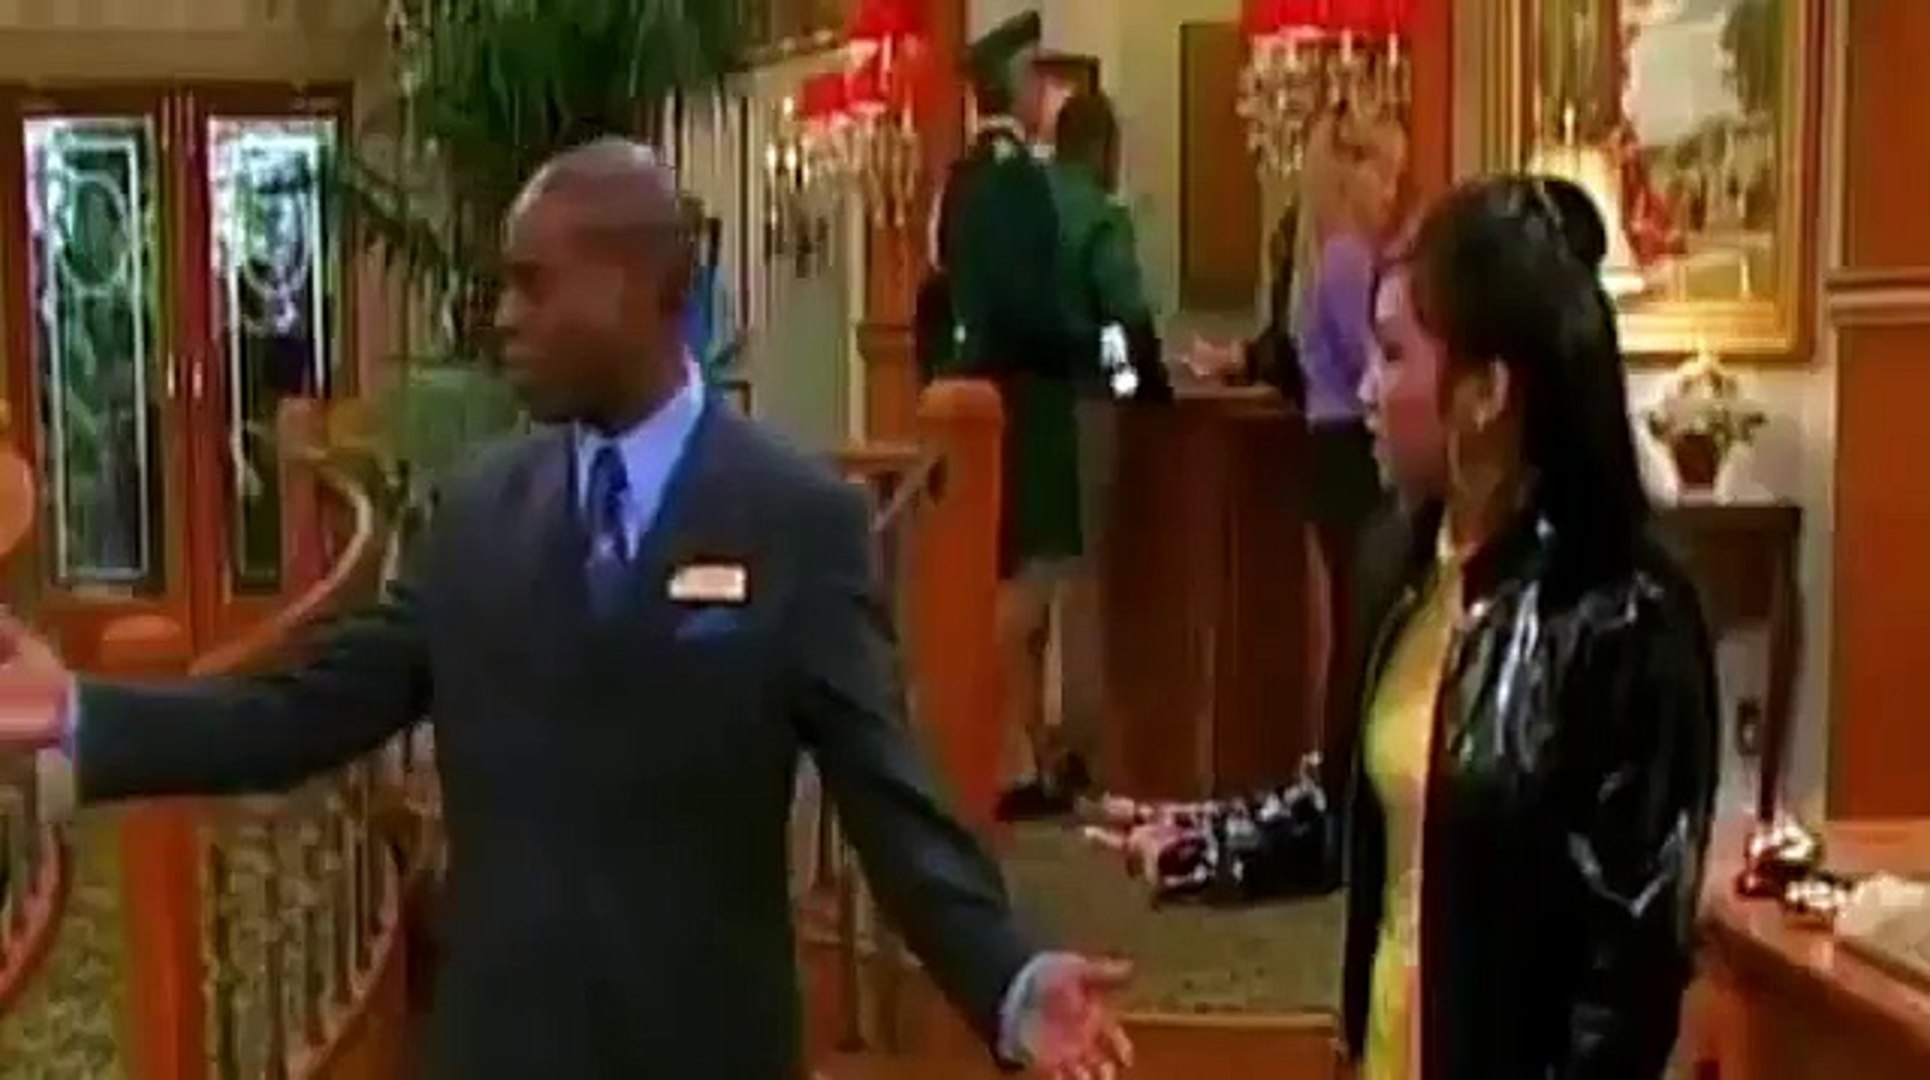 The Suite Life of Zack and Cody Season 1 Episode 10